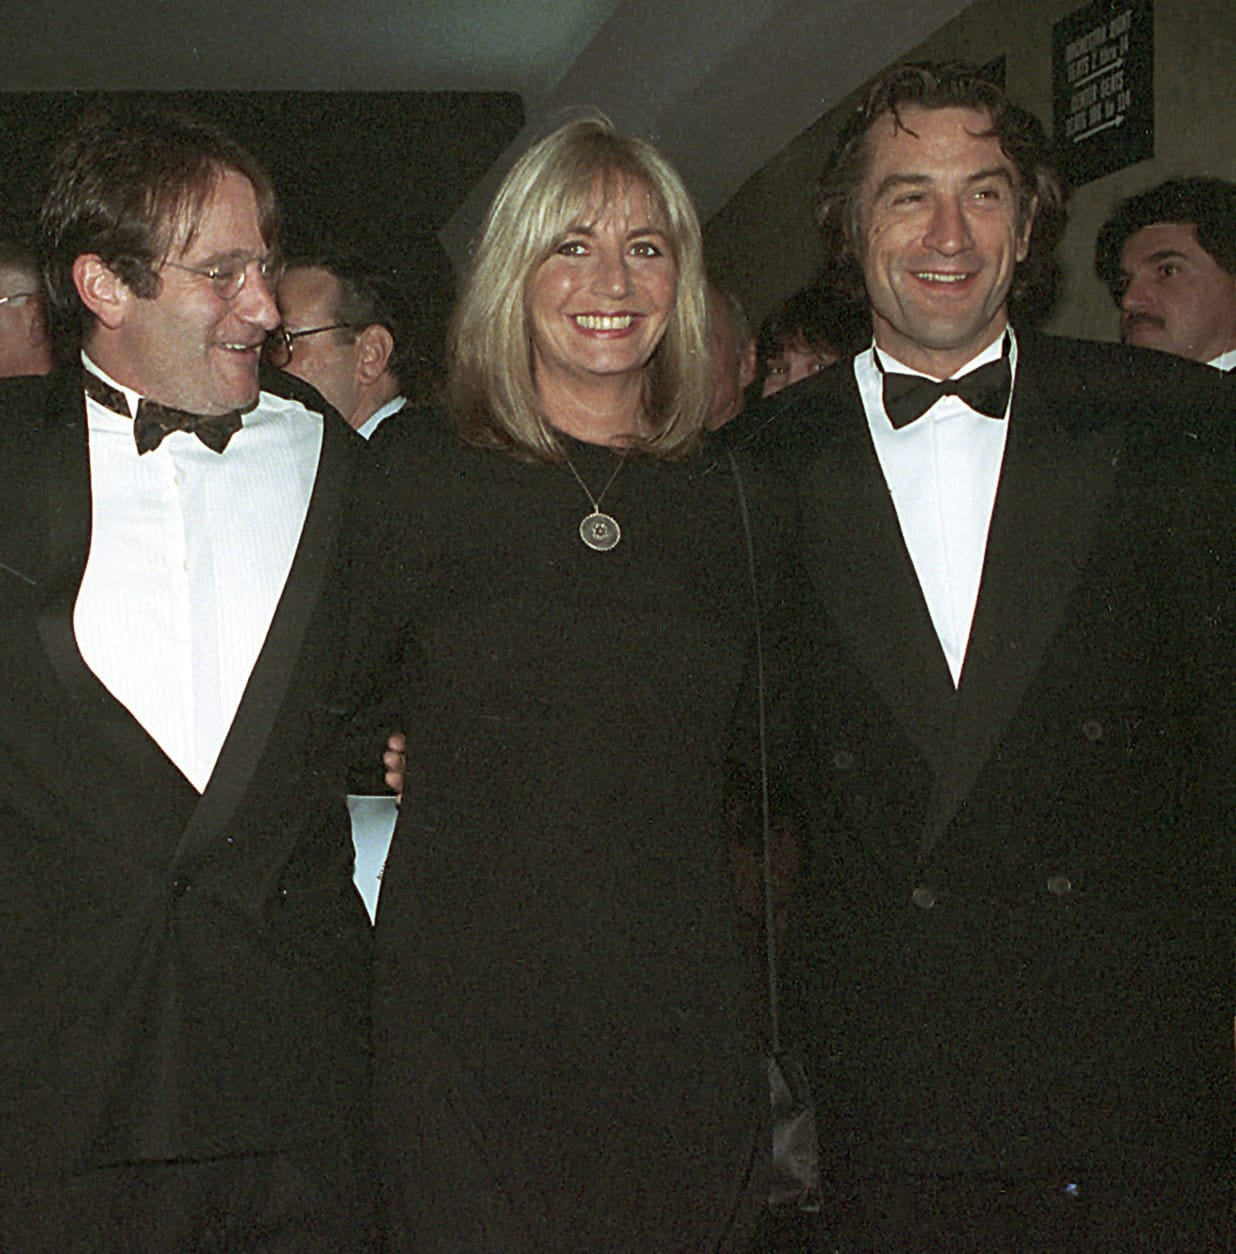 "FILE - In this Dec. 17, 1990 file photo, director Penny Marshall poses with co-stars of ""Awakenings"" Robin Williams, left, and Robert De Niro at the premiere of the film in New York. Marshall died of complications from diabetes on Monday, Dec. 17, 2018, at her Hollywood Hills home. She was 75. (AP Photo/Chrystyna Czajkowsky, File)"